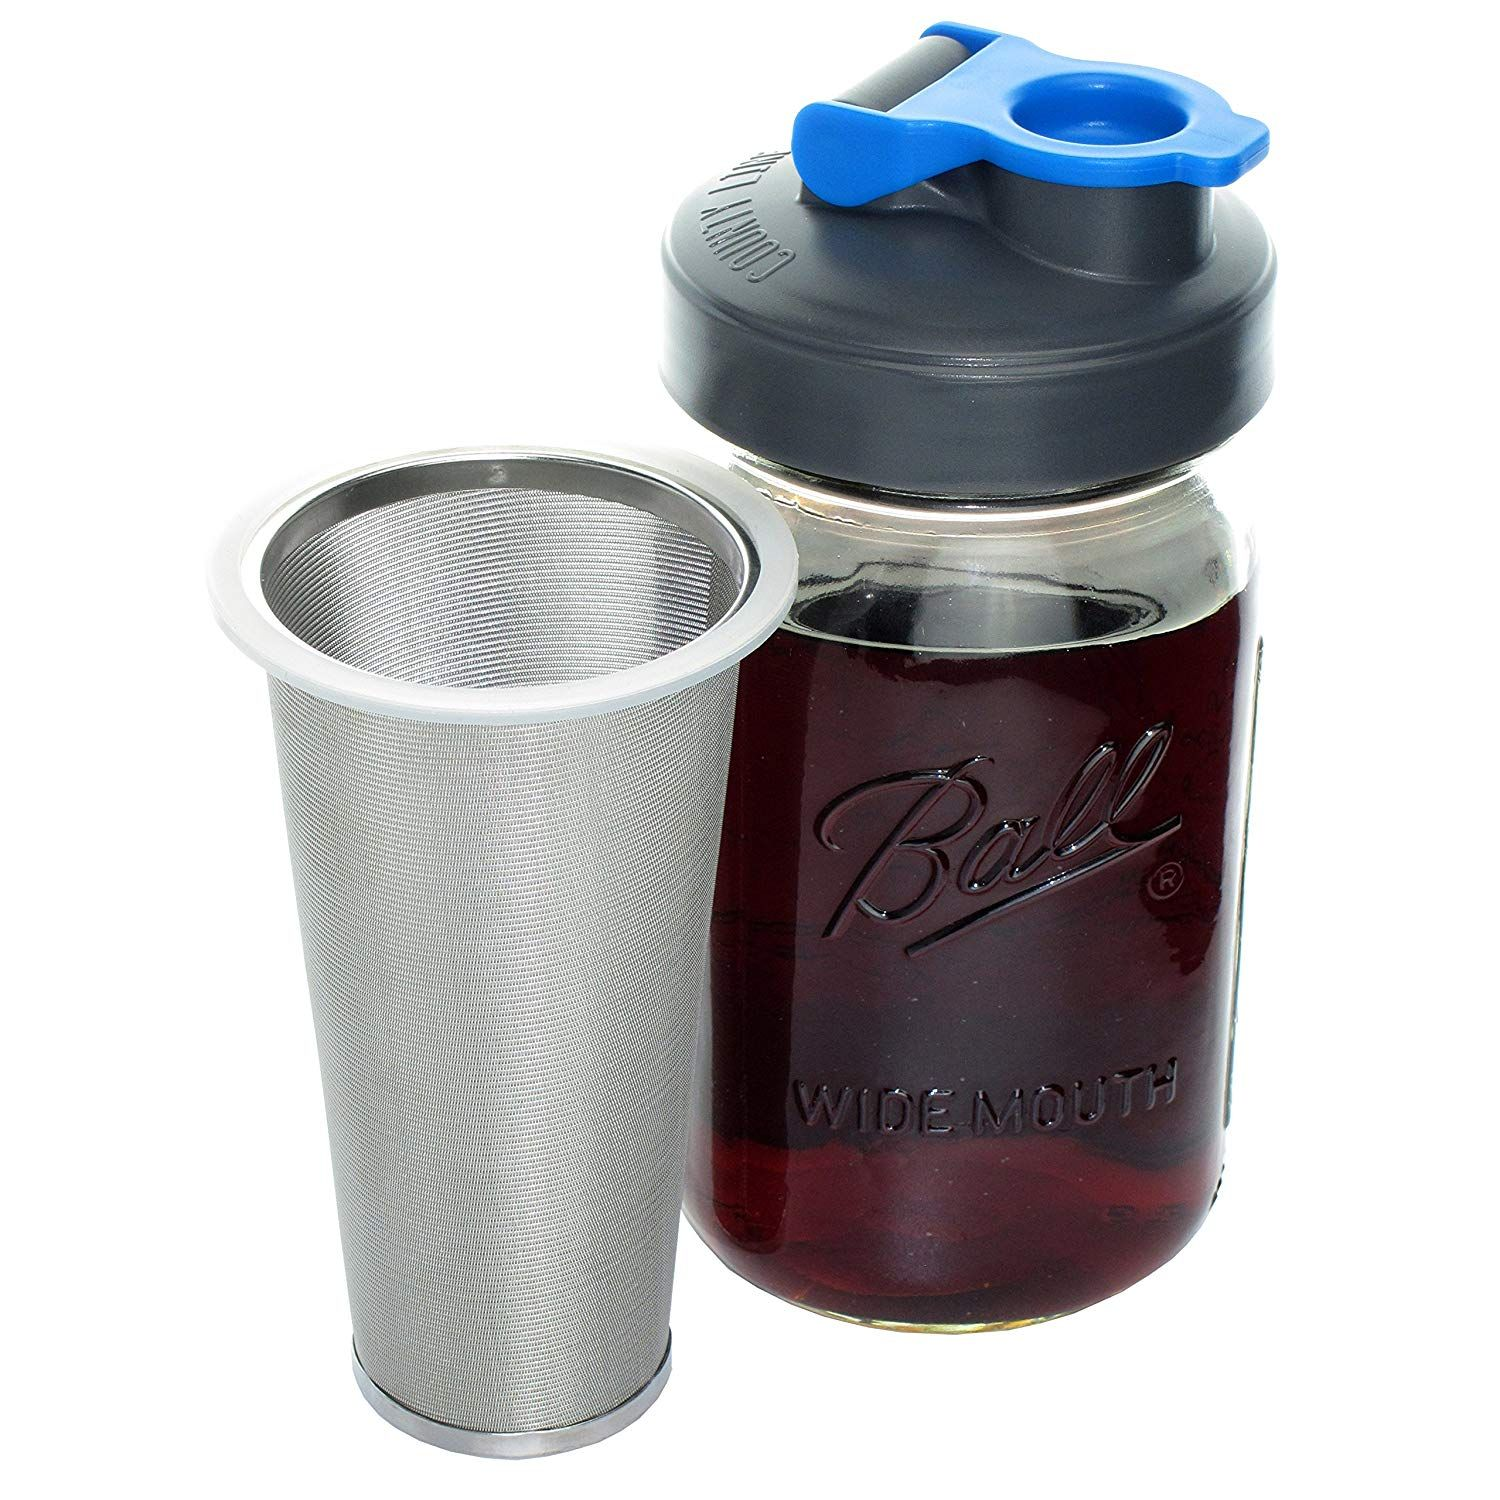 Amazon Cold Brew Coffee Maker with Flip Cap Lid by County